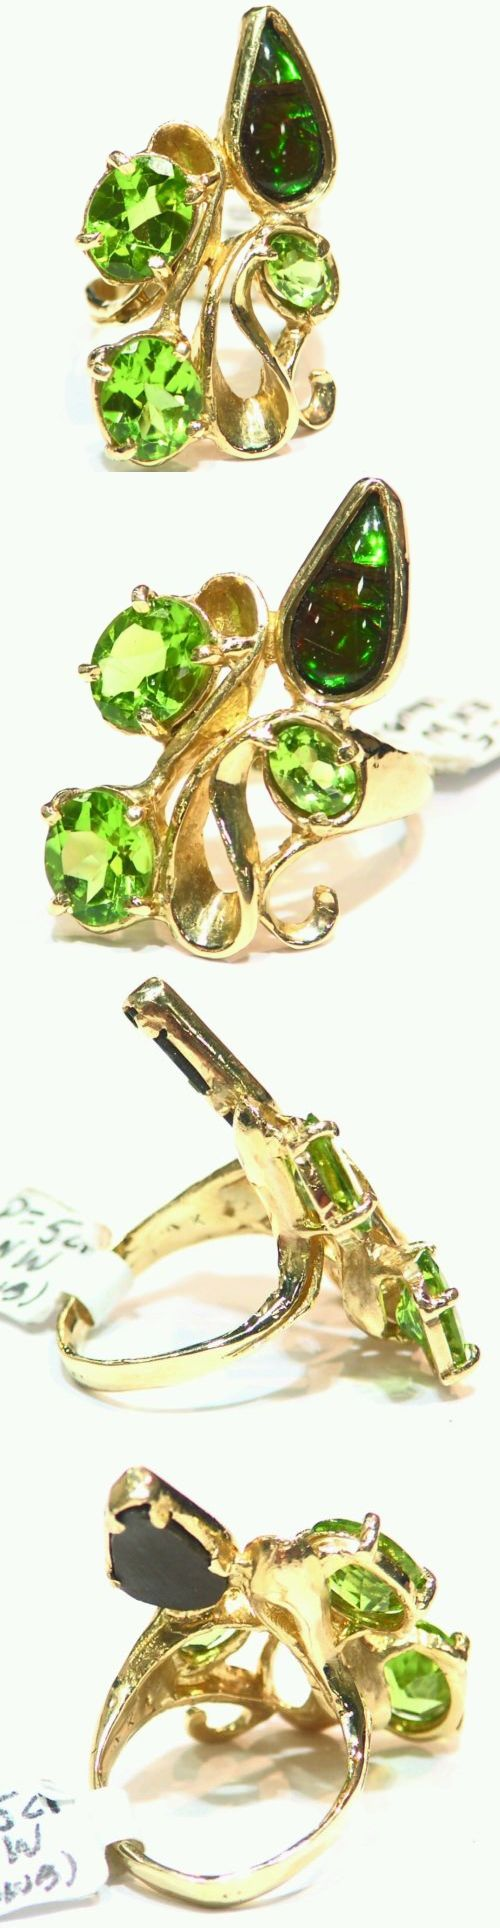 Rings 165044: 5.82Ct 14K Gold Natural Peridot Round Cut Ammonite Vintage Engagement Ring BUY IT NOW ONLY: $681.0